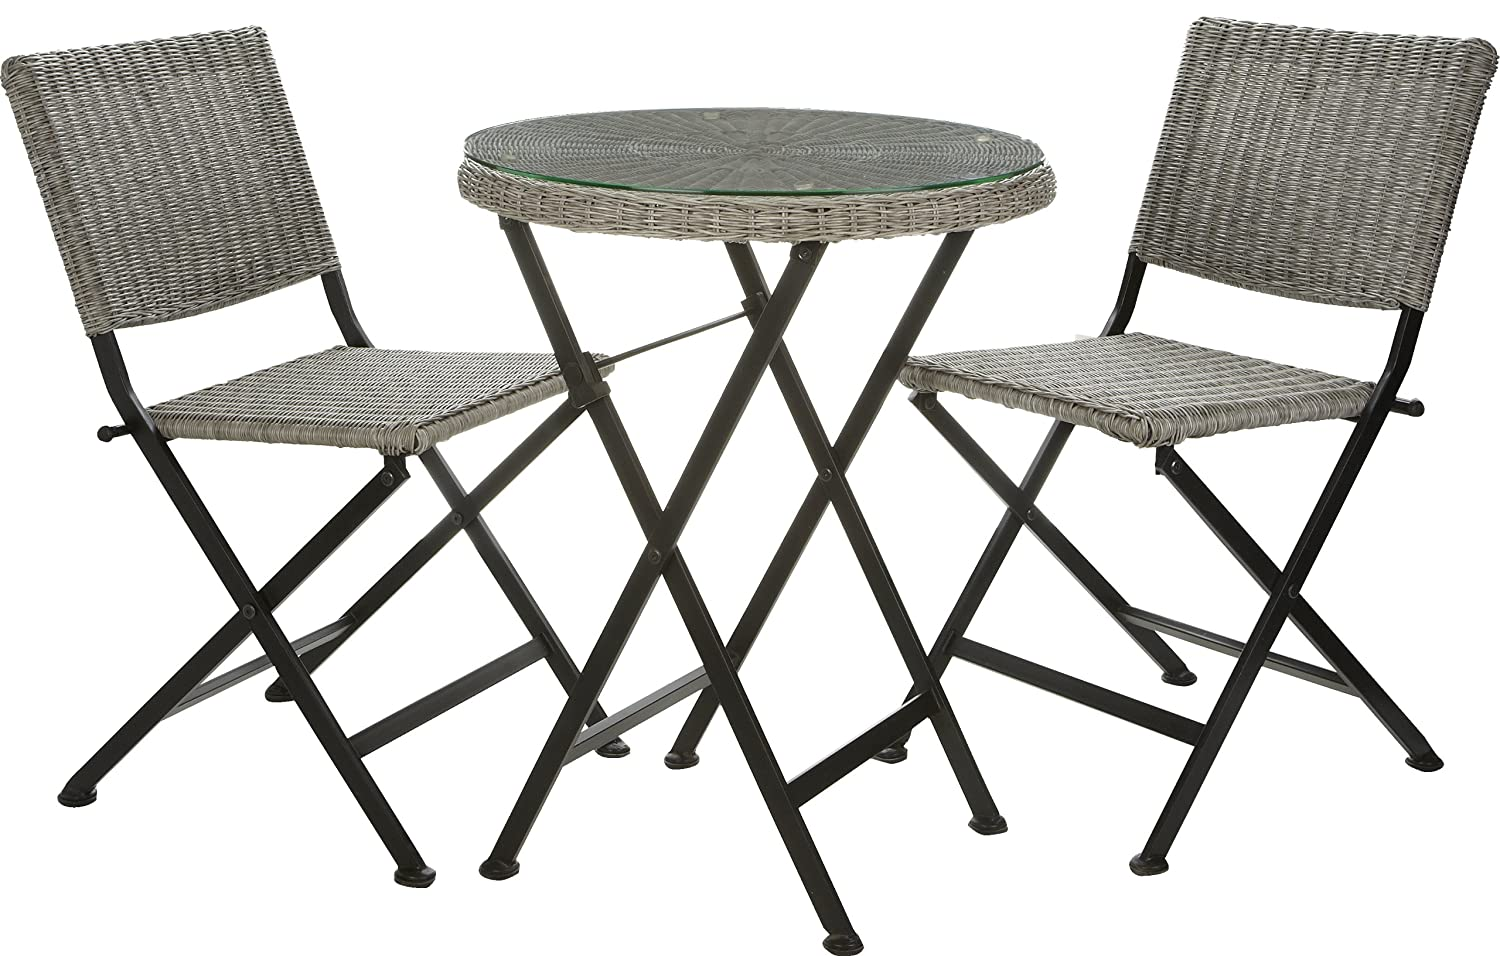 gartenfreude bistro set balkonm bel polyrattan grau mit. Black Bedroom Furniture Sets. Home Design Ideas